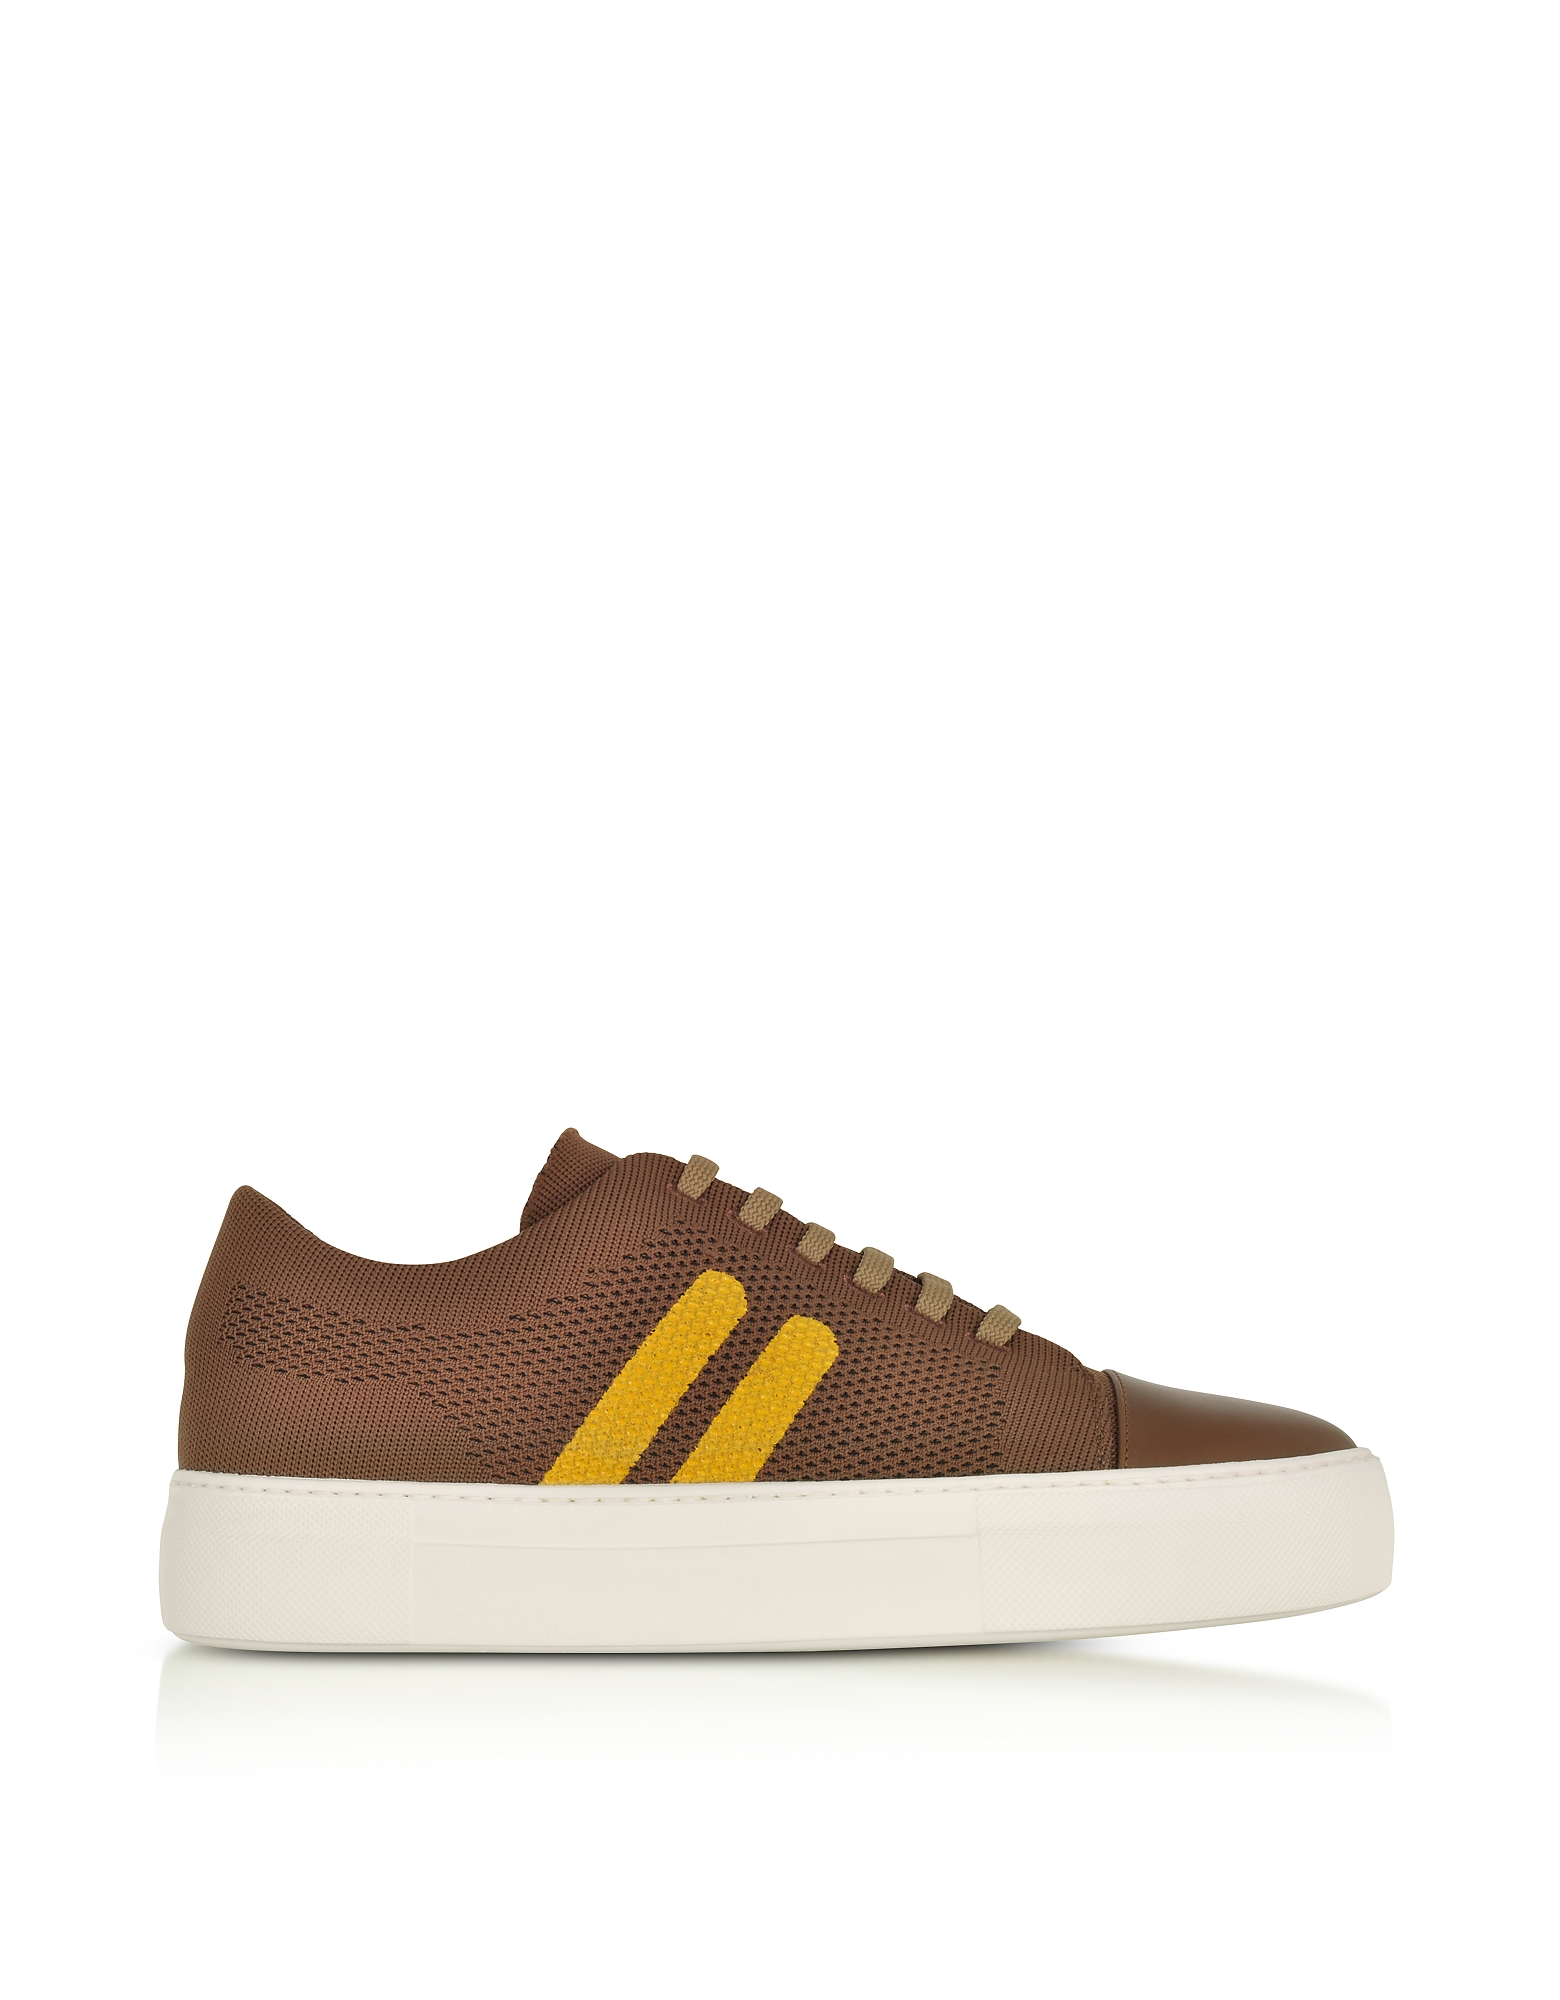 Neil Barrett Shoes, Cognac/Buttercup Perforated Fabric and Nappa Leather Skateboard Sneakers